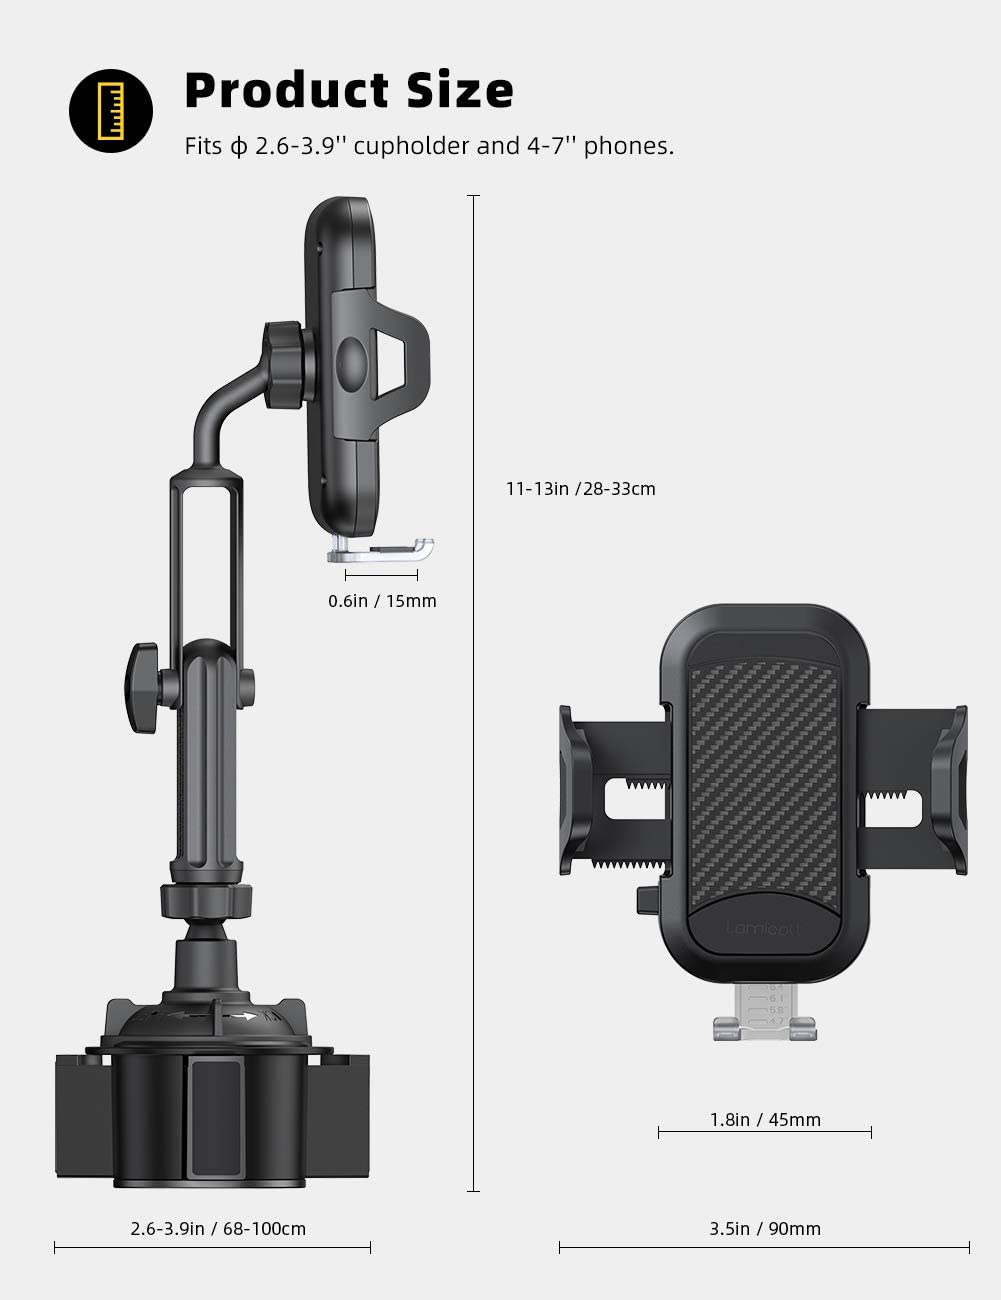 Car Cup Holder Phone Mount Compatible with iPhone 11 Pro Xs Max XR X 8 7 6 Plus 4-6.5 Smart Phones Cell Phone Cupholder Cradle with Extendable and Adjustable Arm